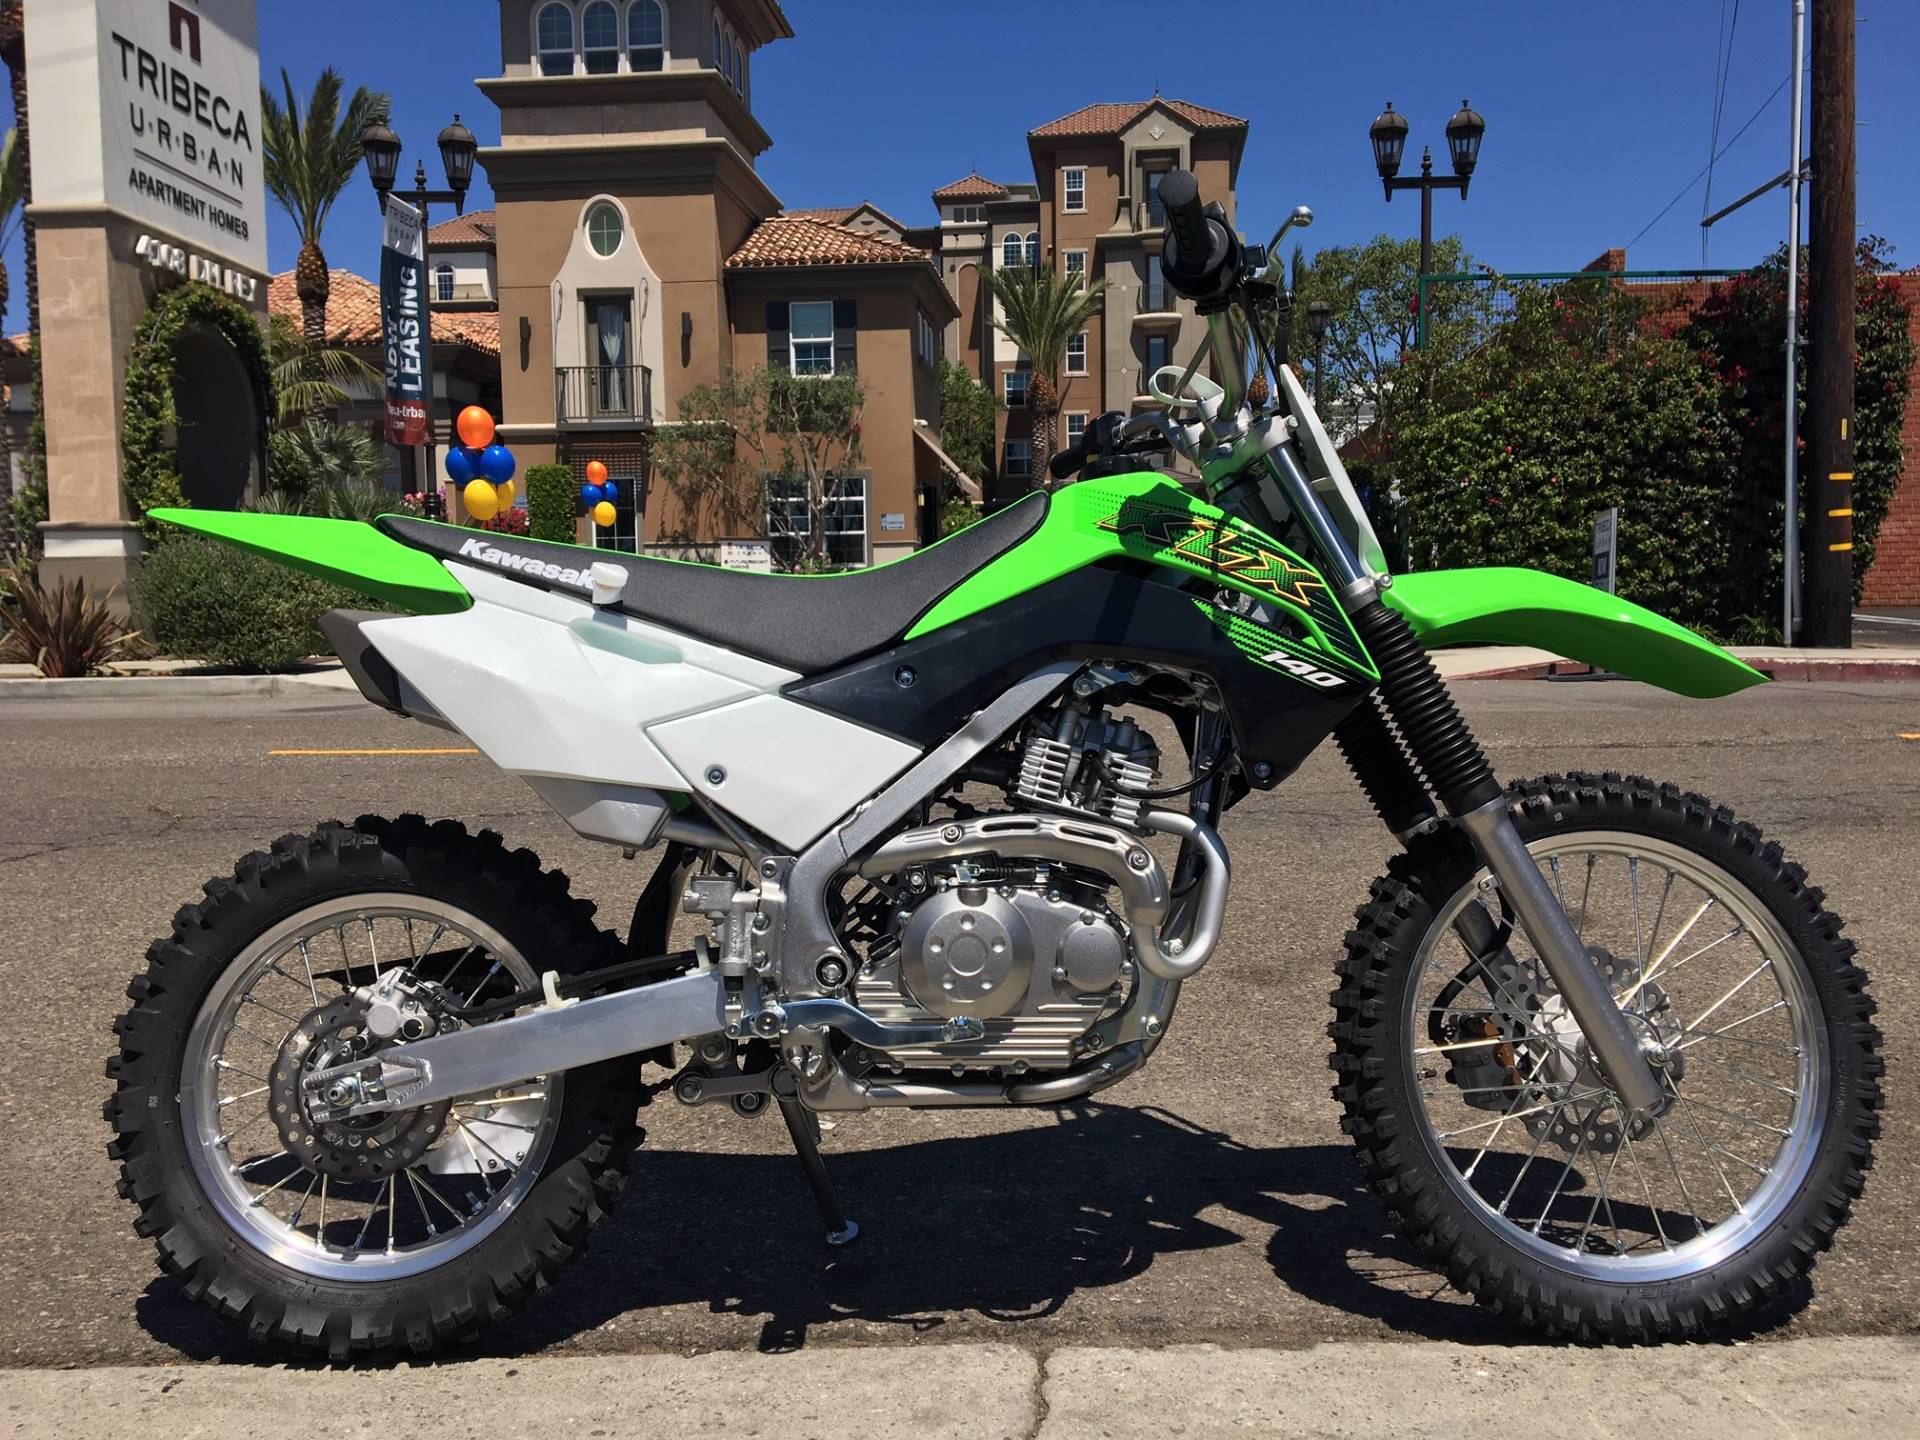 2020 Kawasaki KLX 140 in Marina Del Rey, California - Photo 1